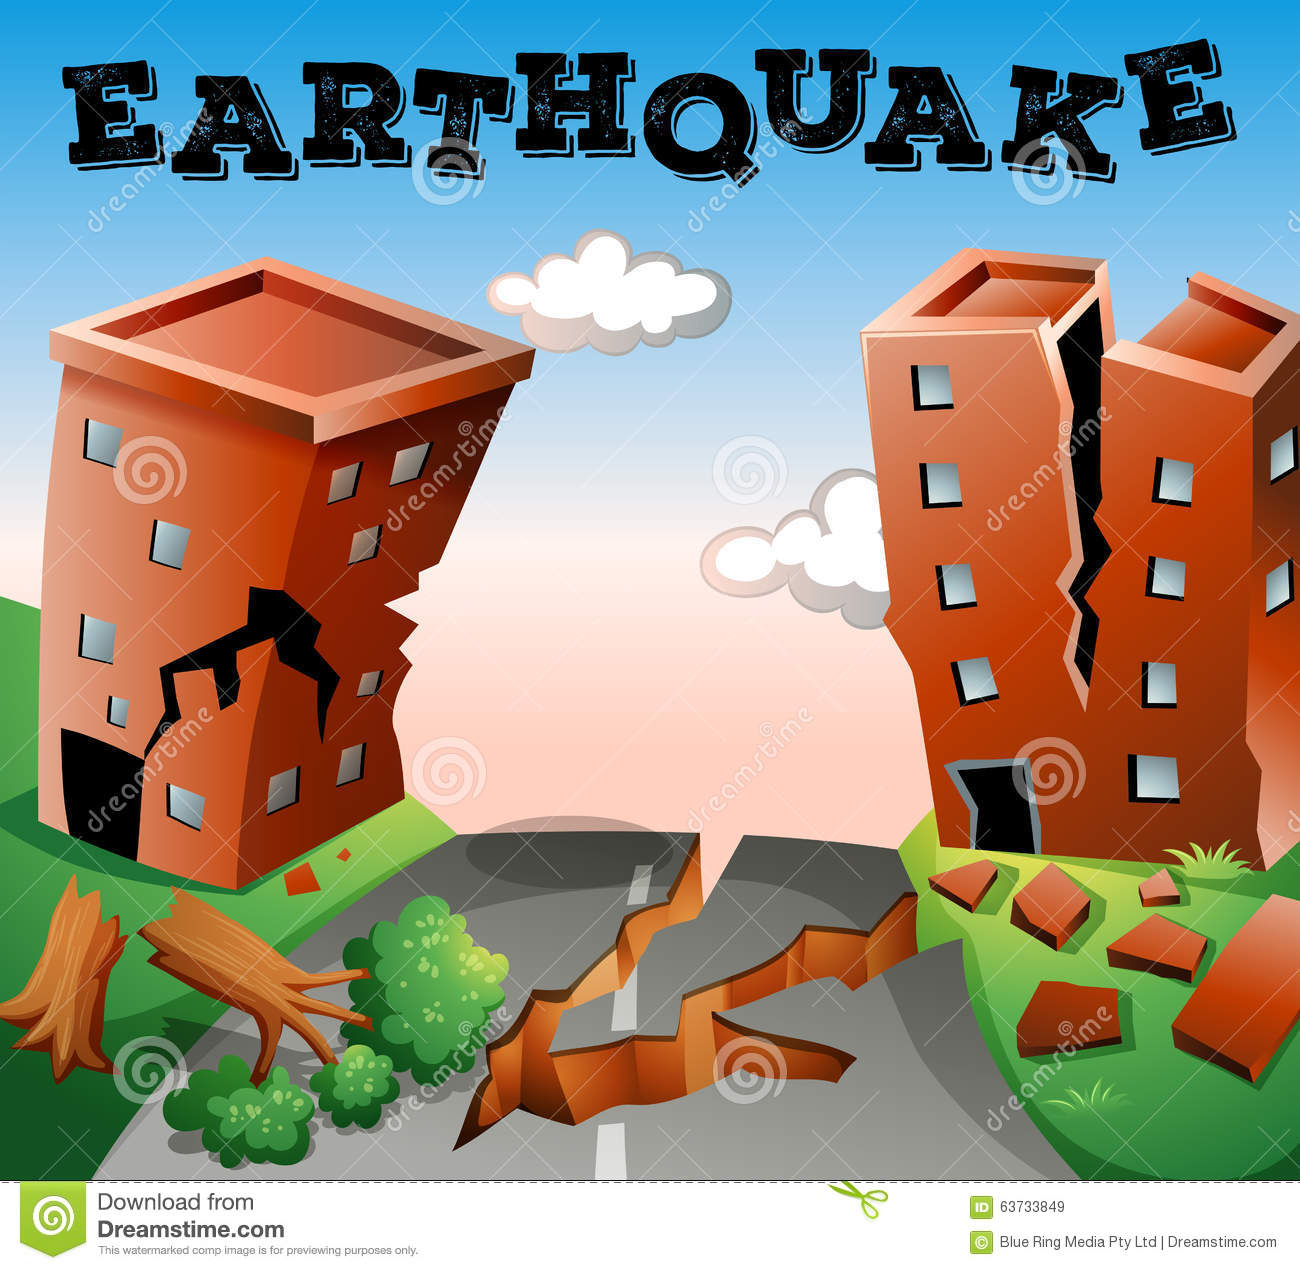 Natural Disaster Scene Of Earthquake Stock Vector - Image: 63733849